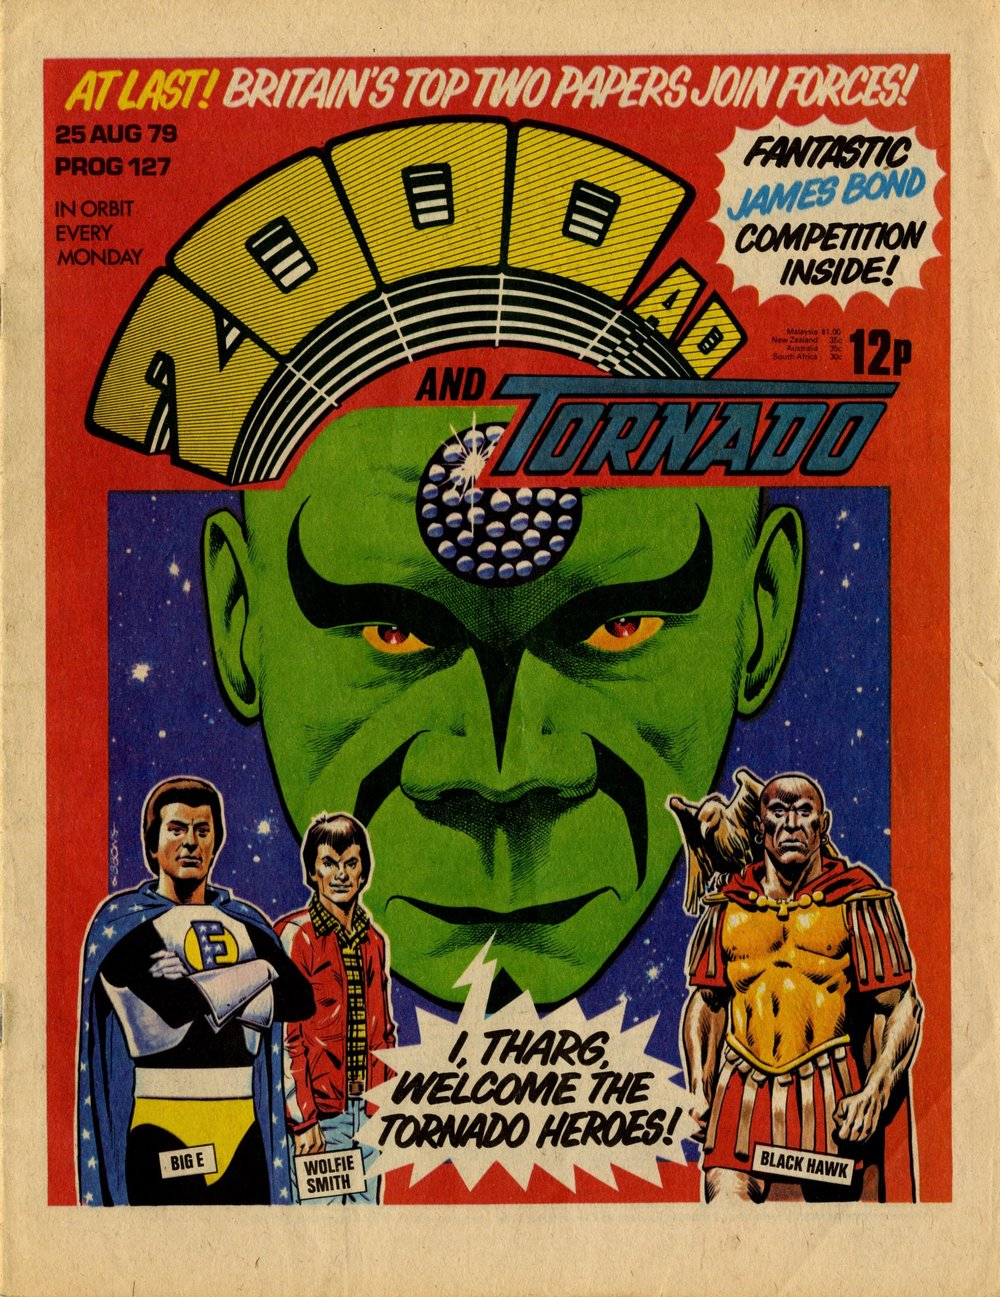 25 August 1979: 2000AD and Tornado (Dave Gibbons (artist))